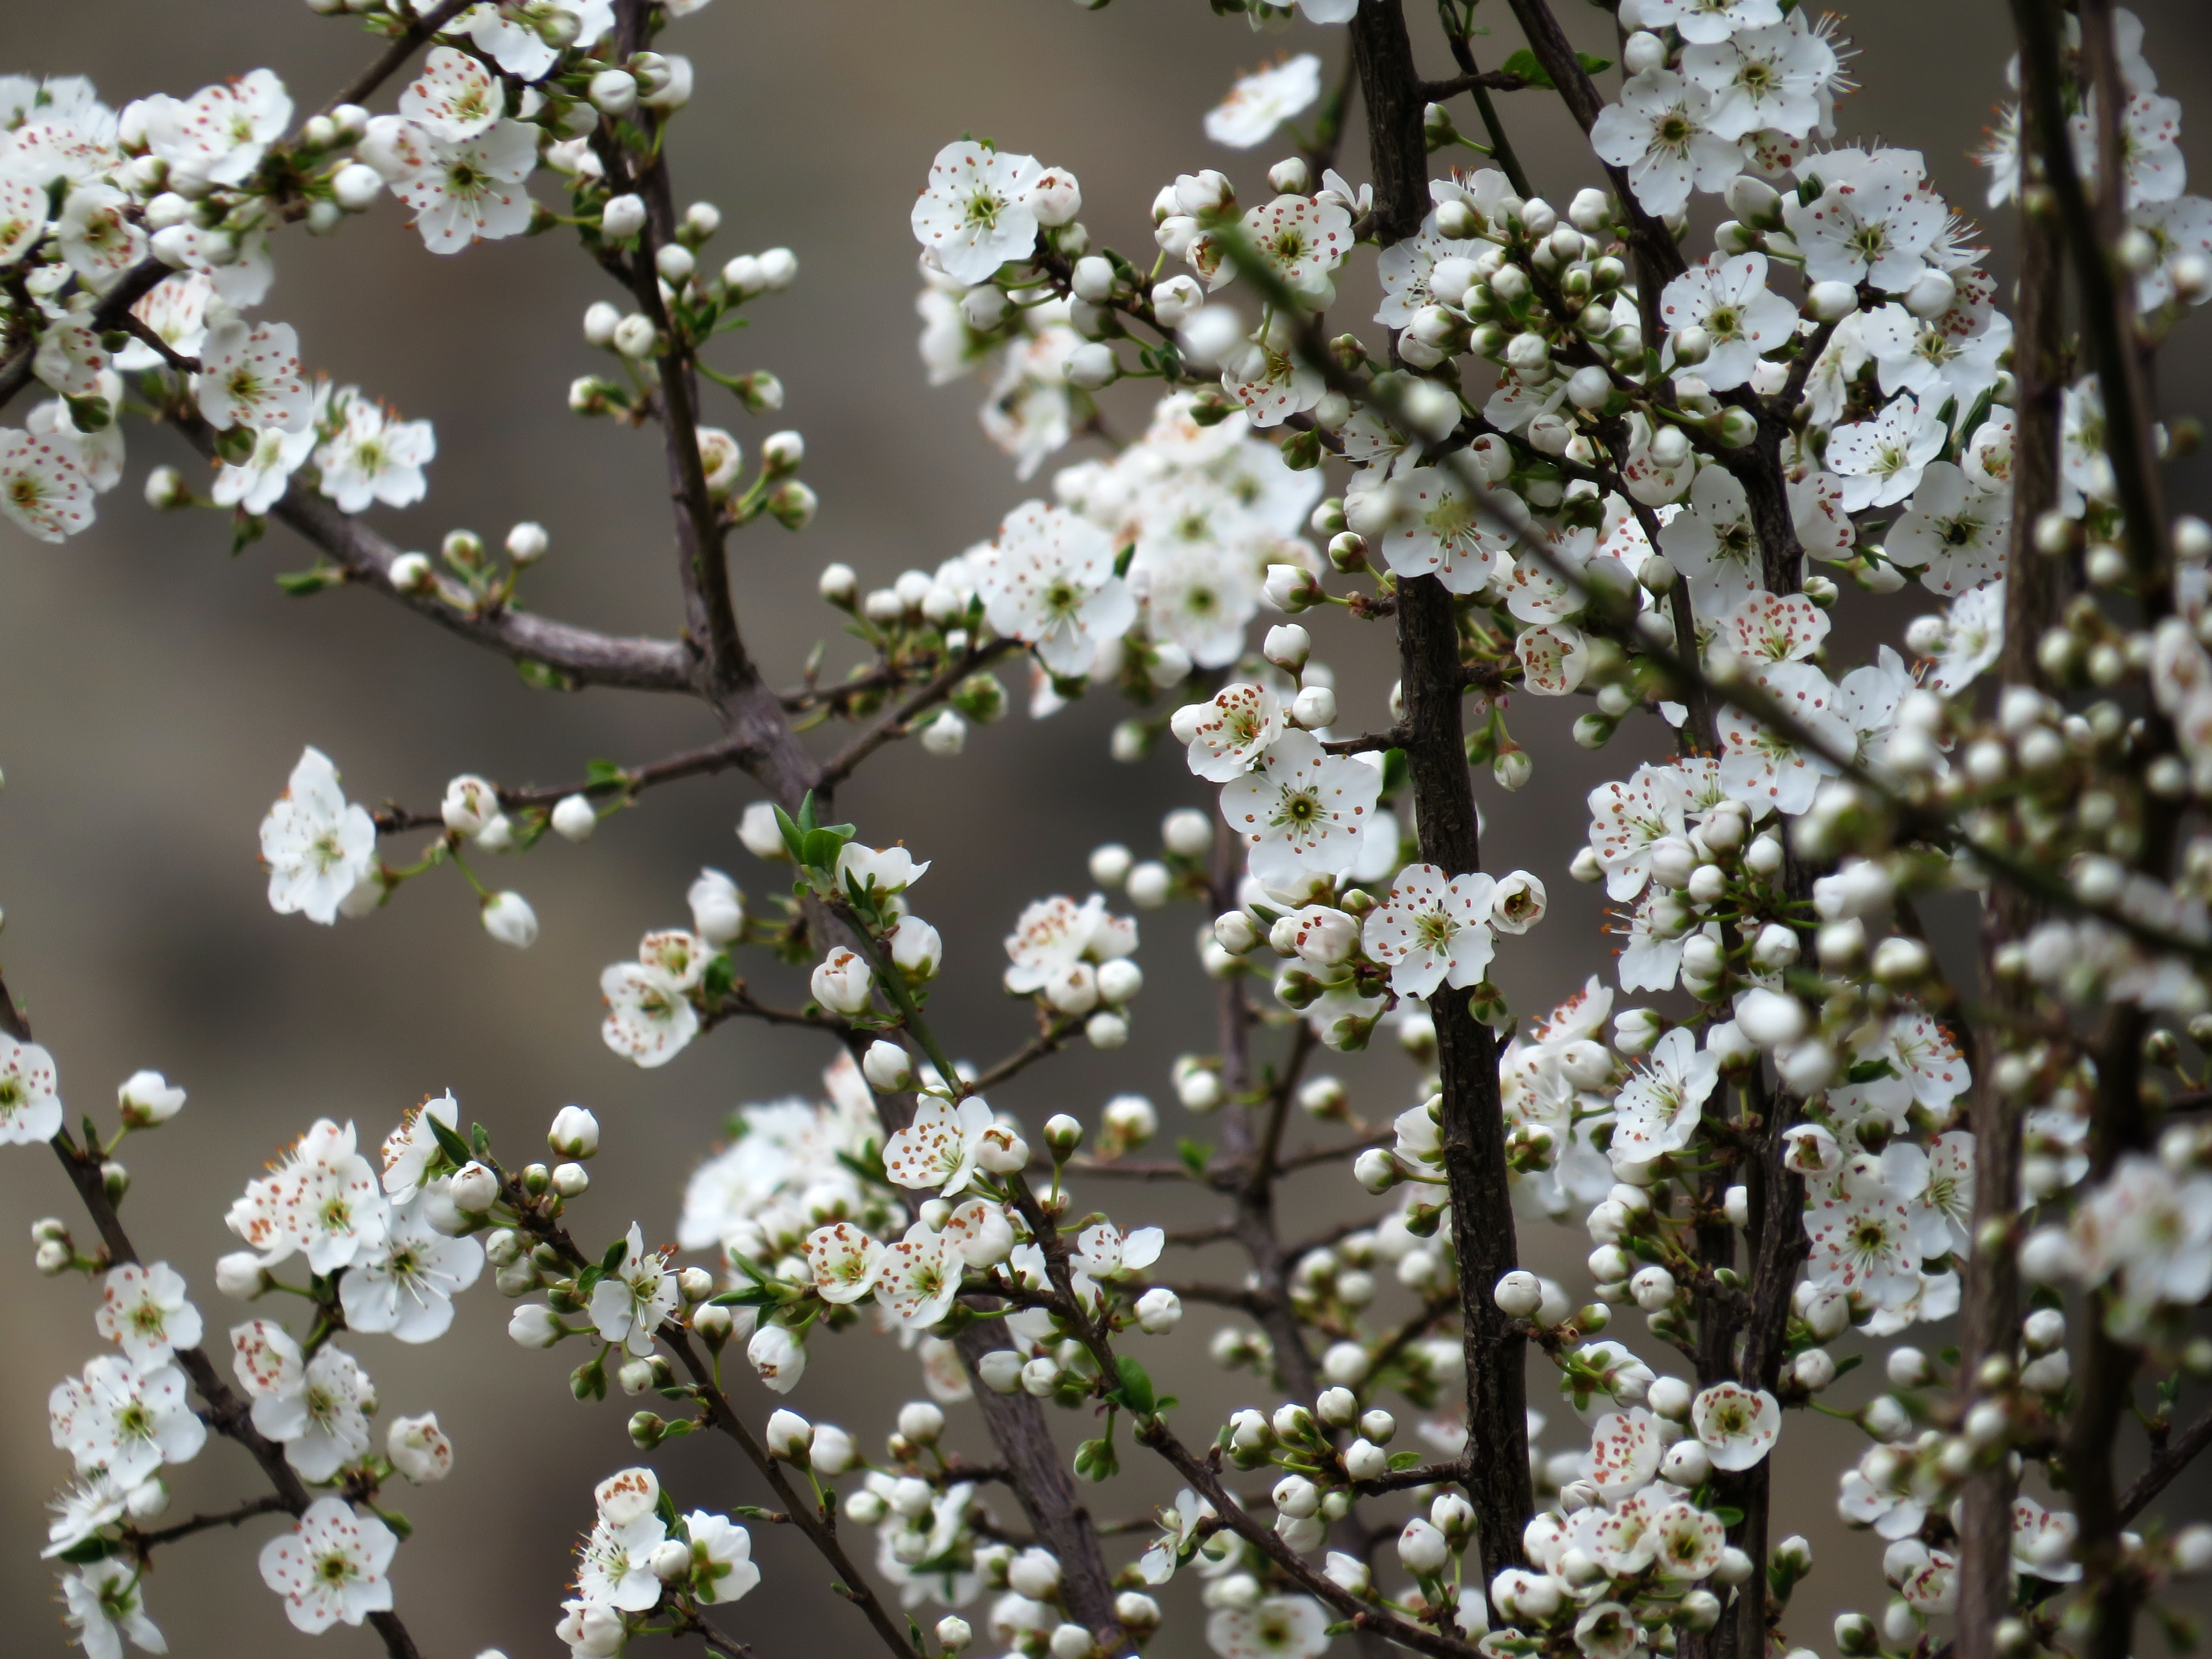 A close-up of branches with white flowers in blossom